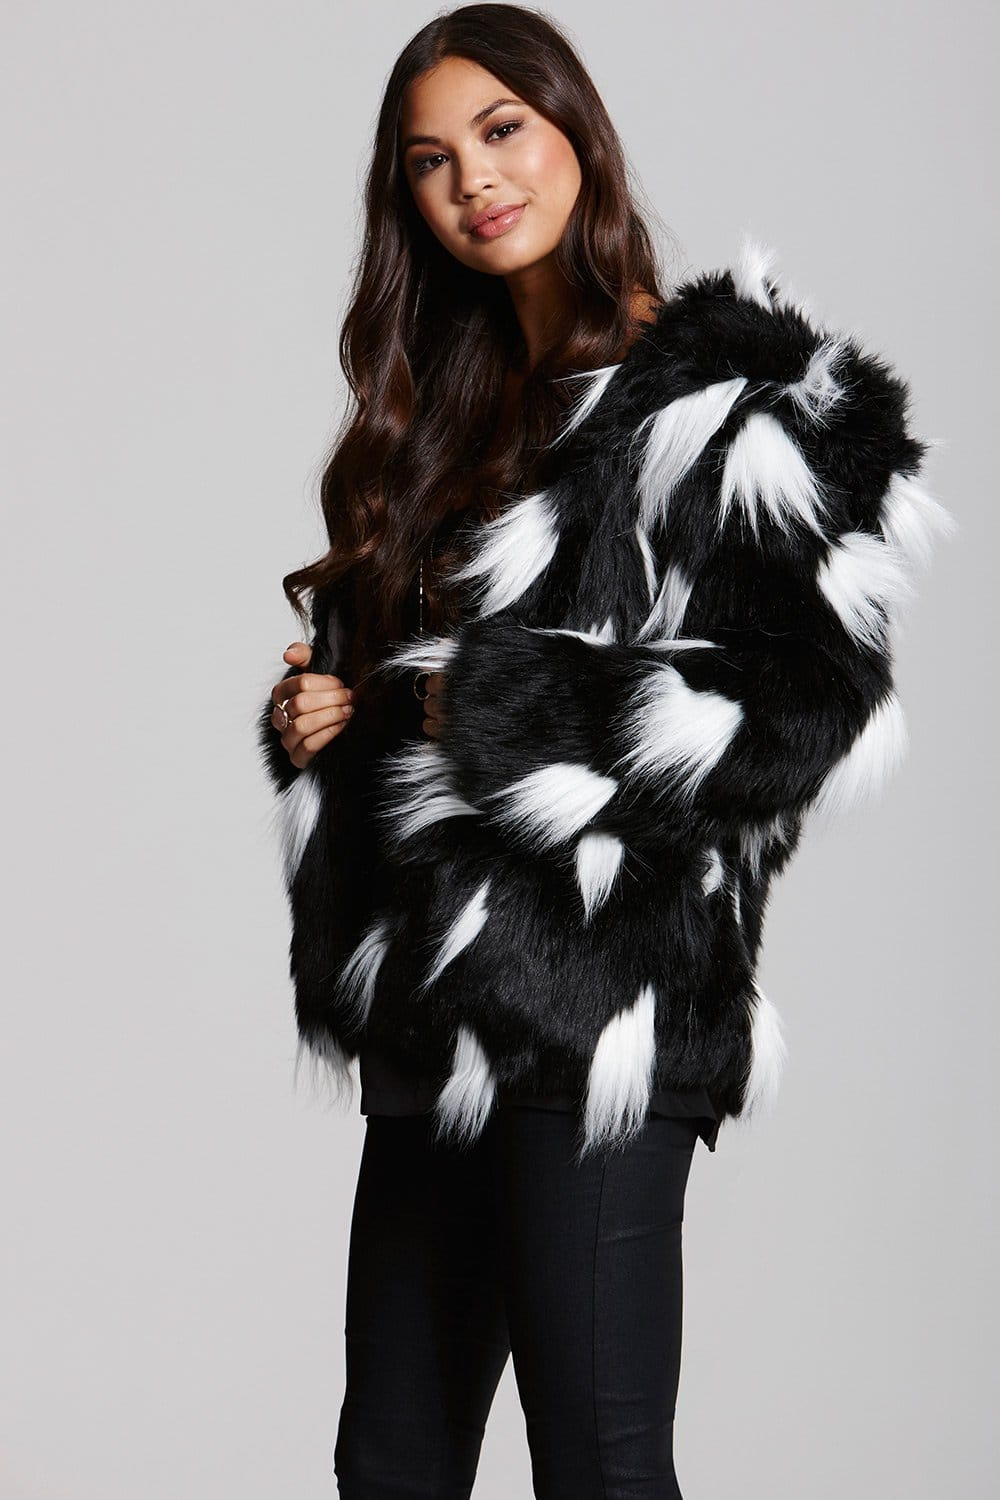 Shop for faux fur coats outerwear online at Target. Free shipping on purchases over $35 and save 5% every day with your Target REDcard.